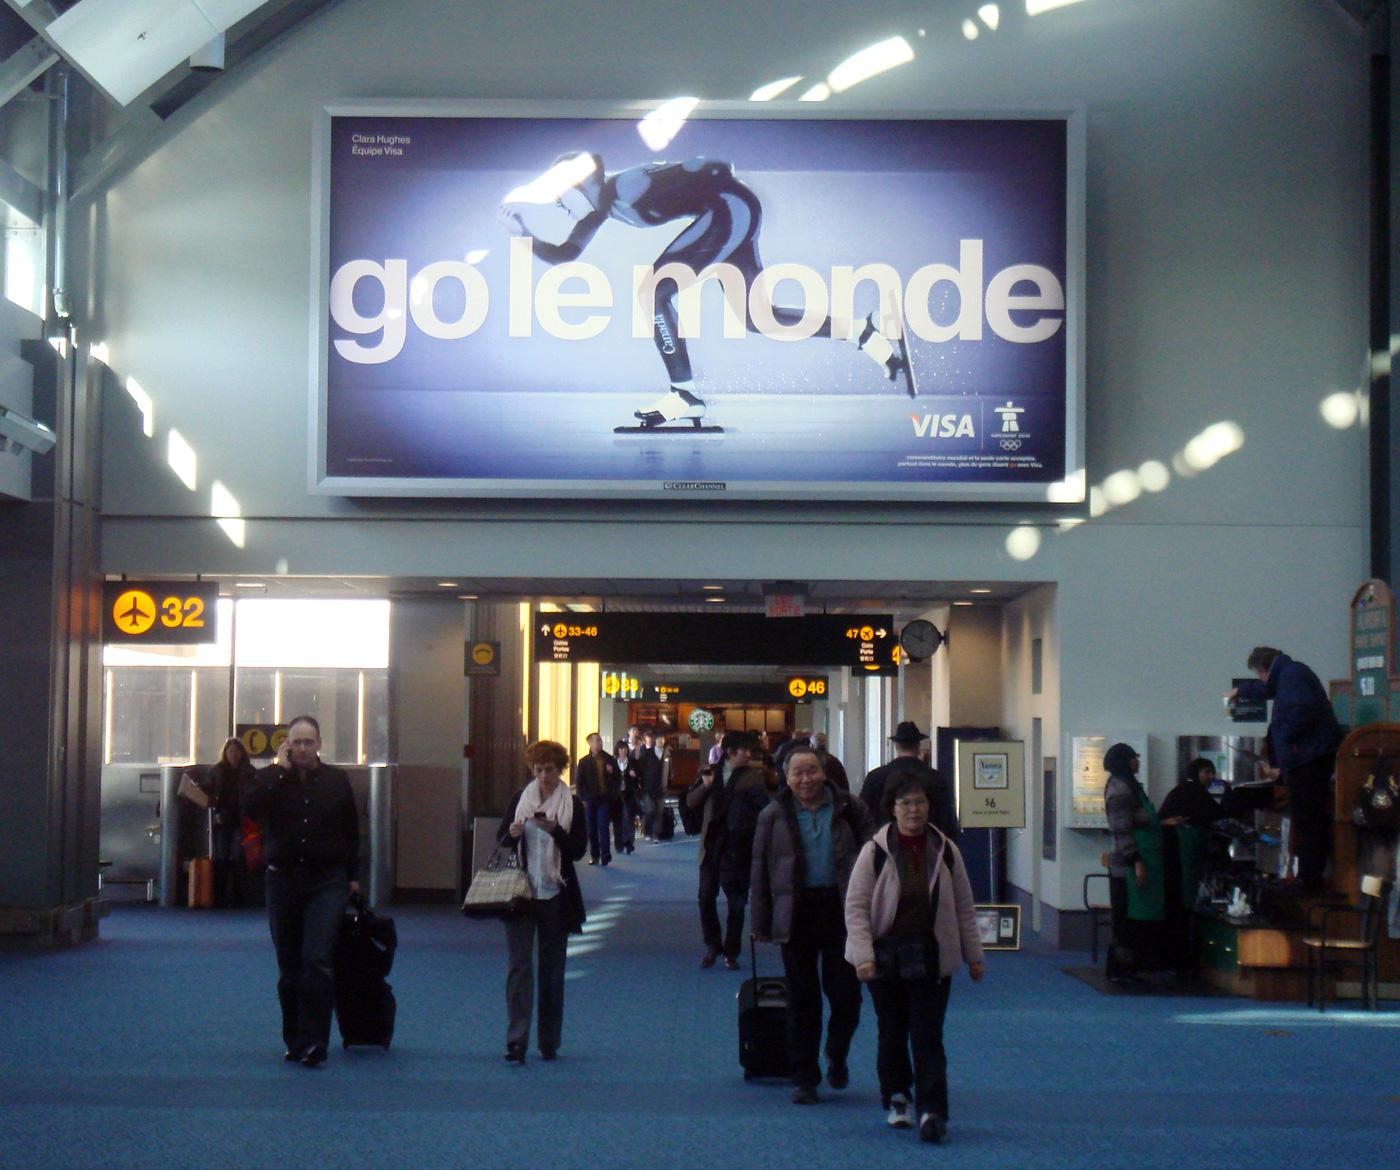 Visa Outdoor Ad -  Go World, Go le monde